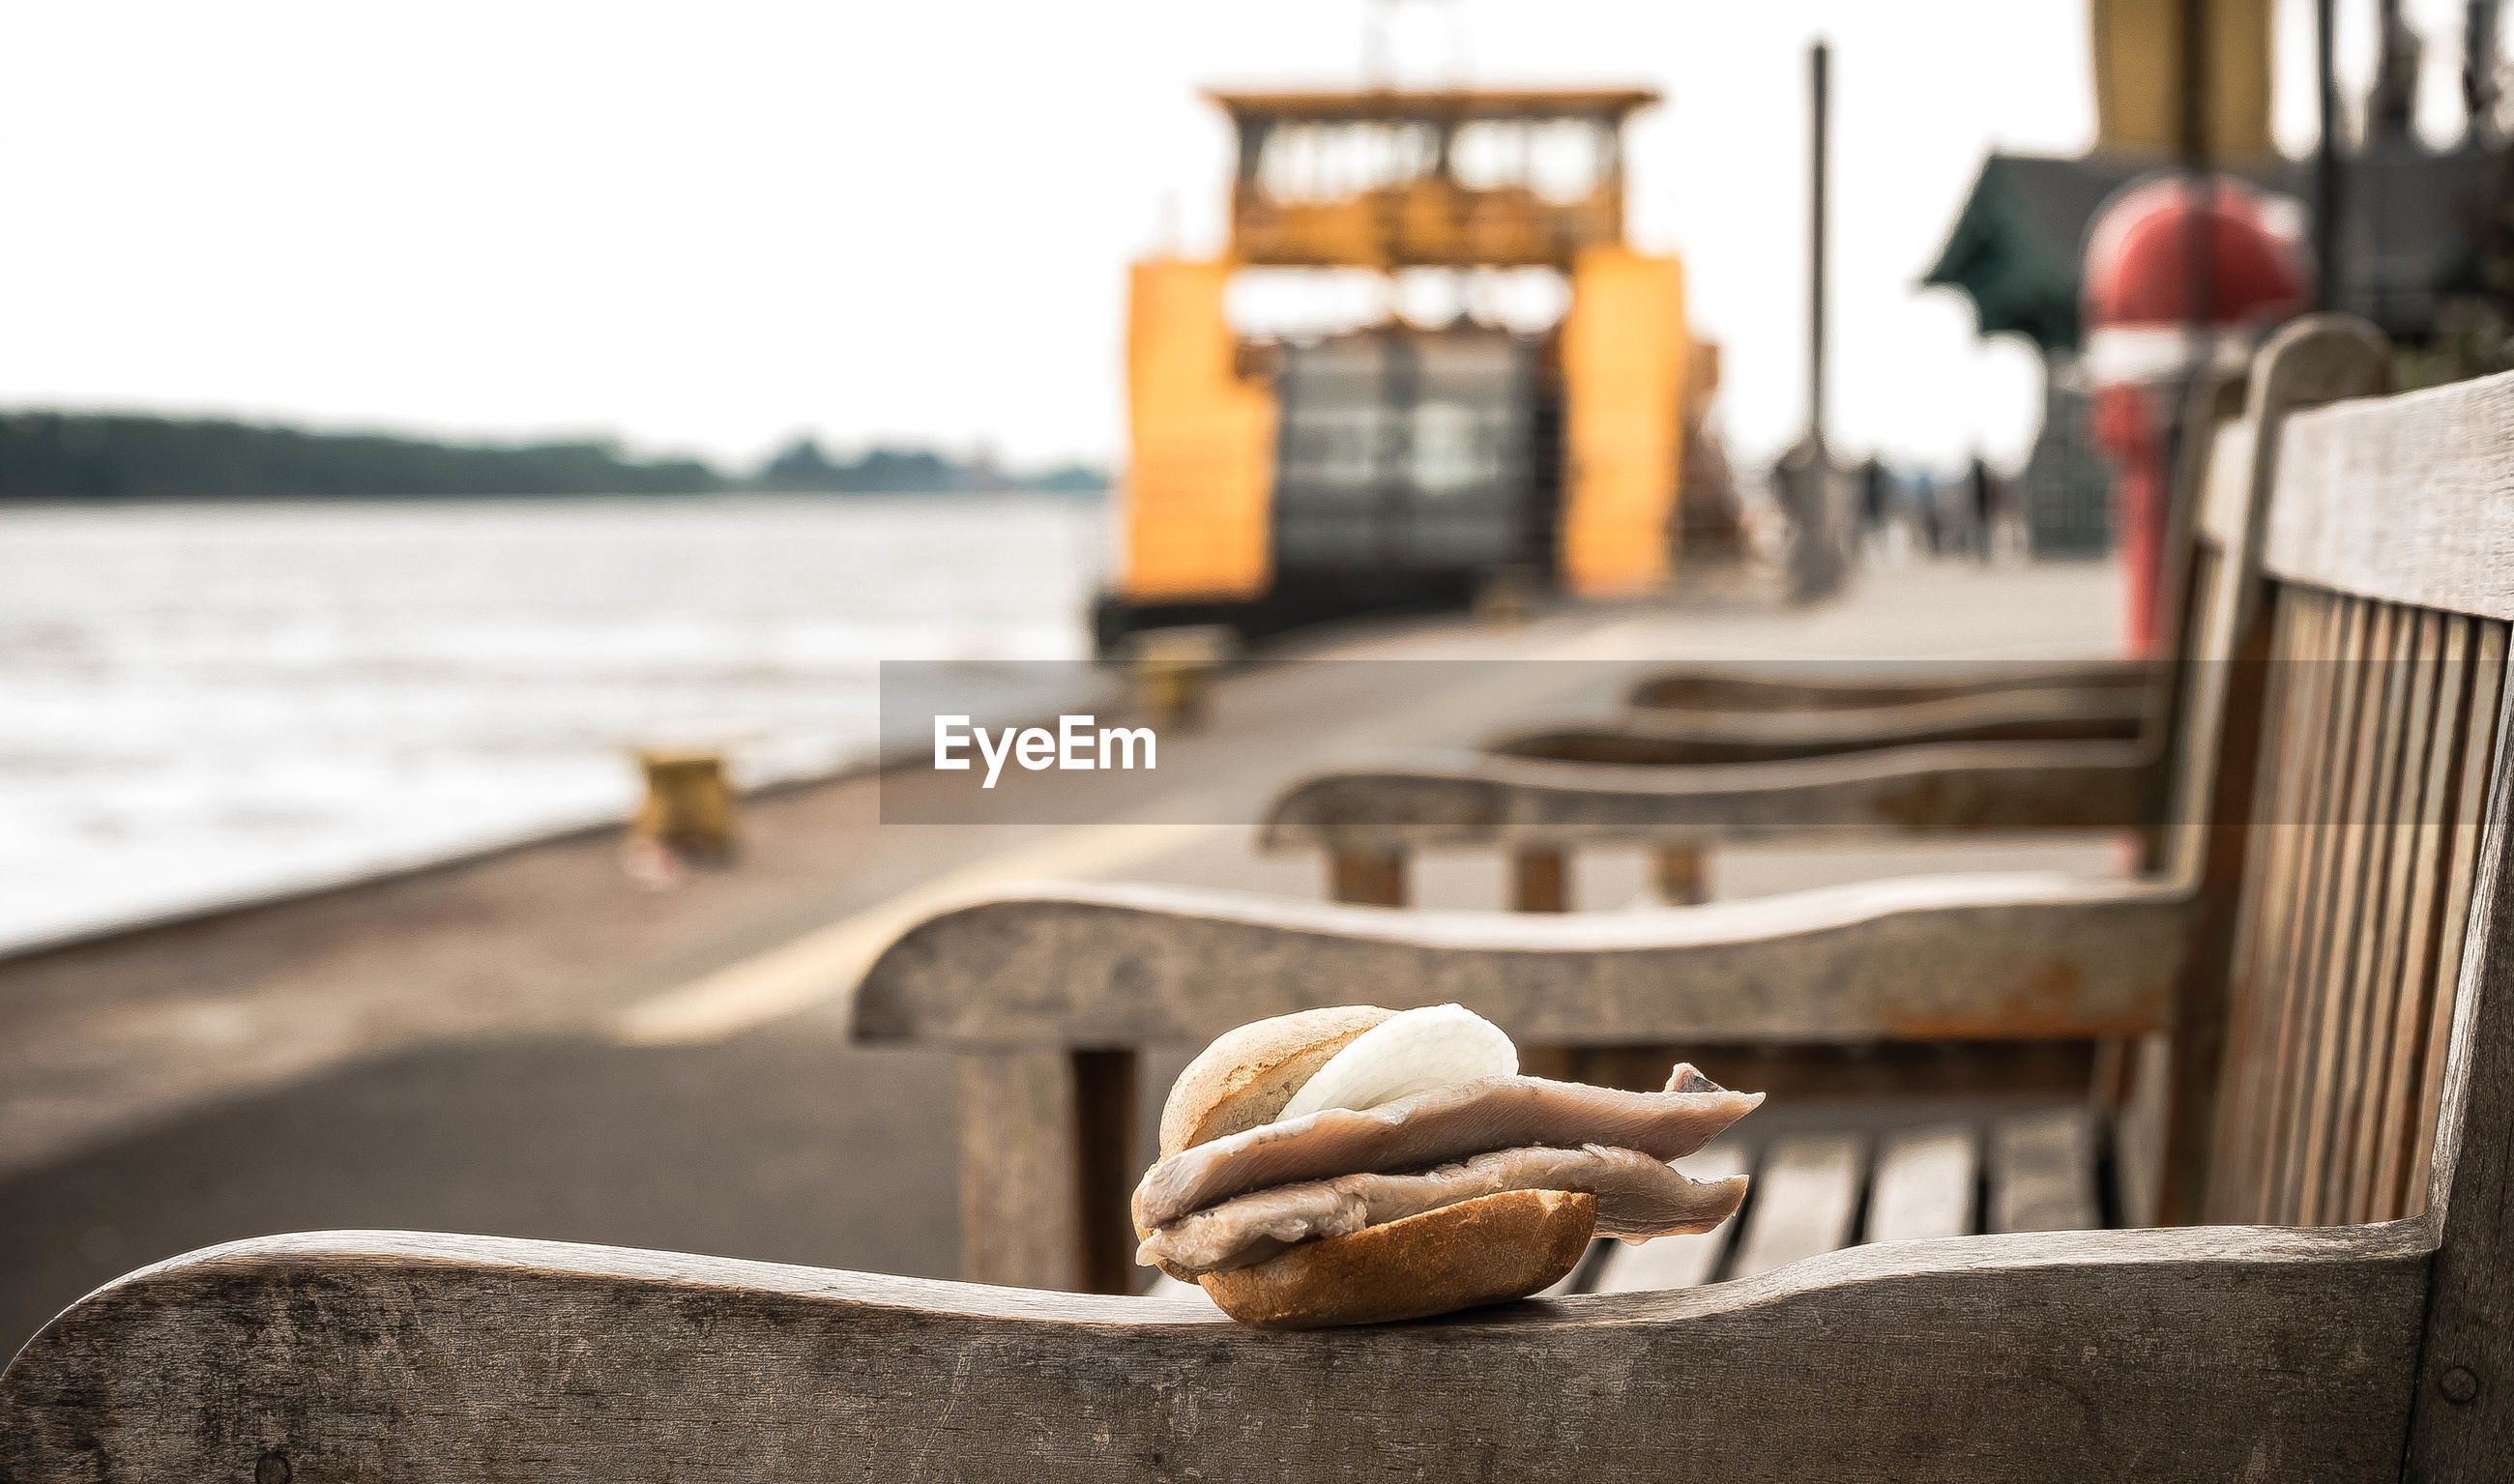 Close-up of sandwich on bench by river against sky